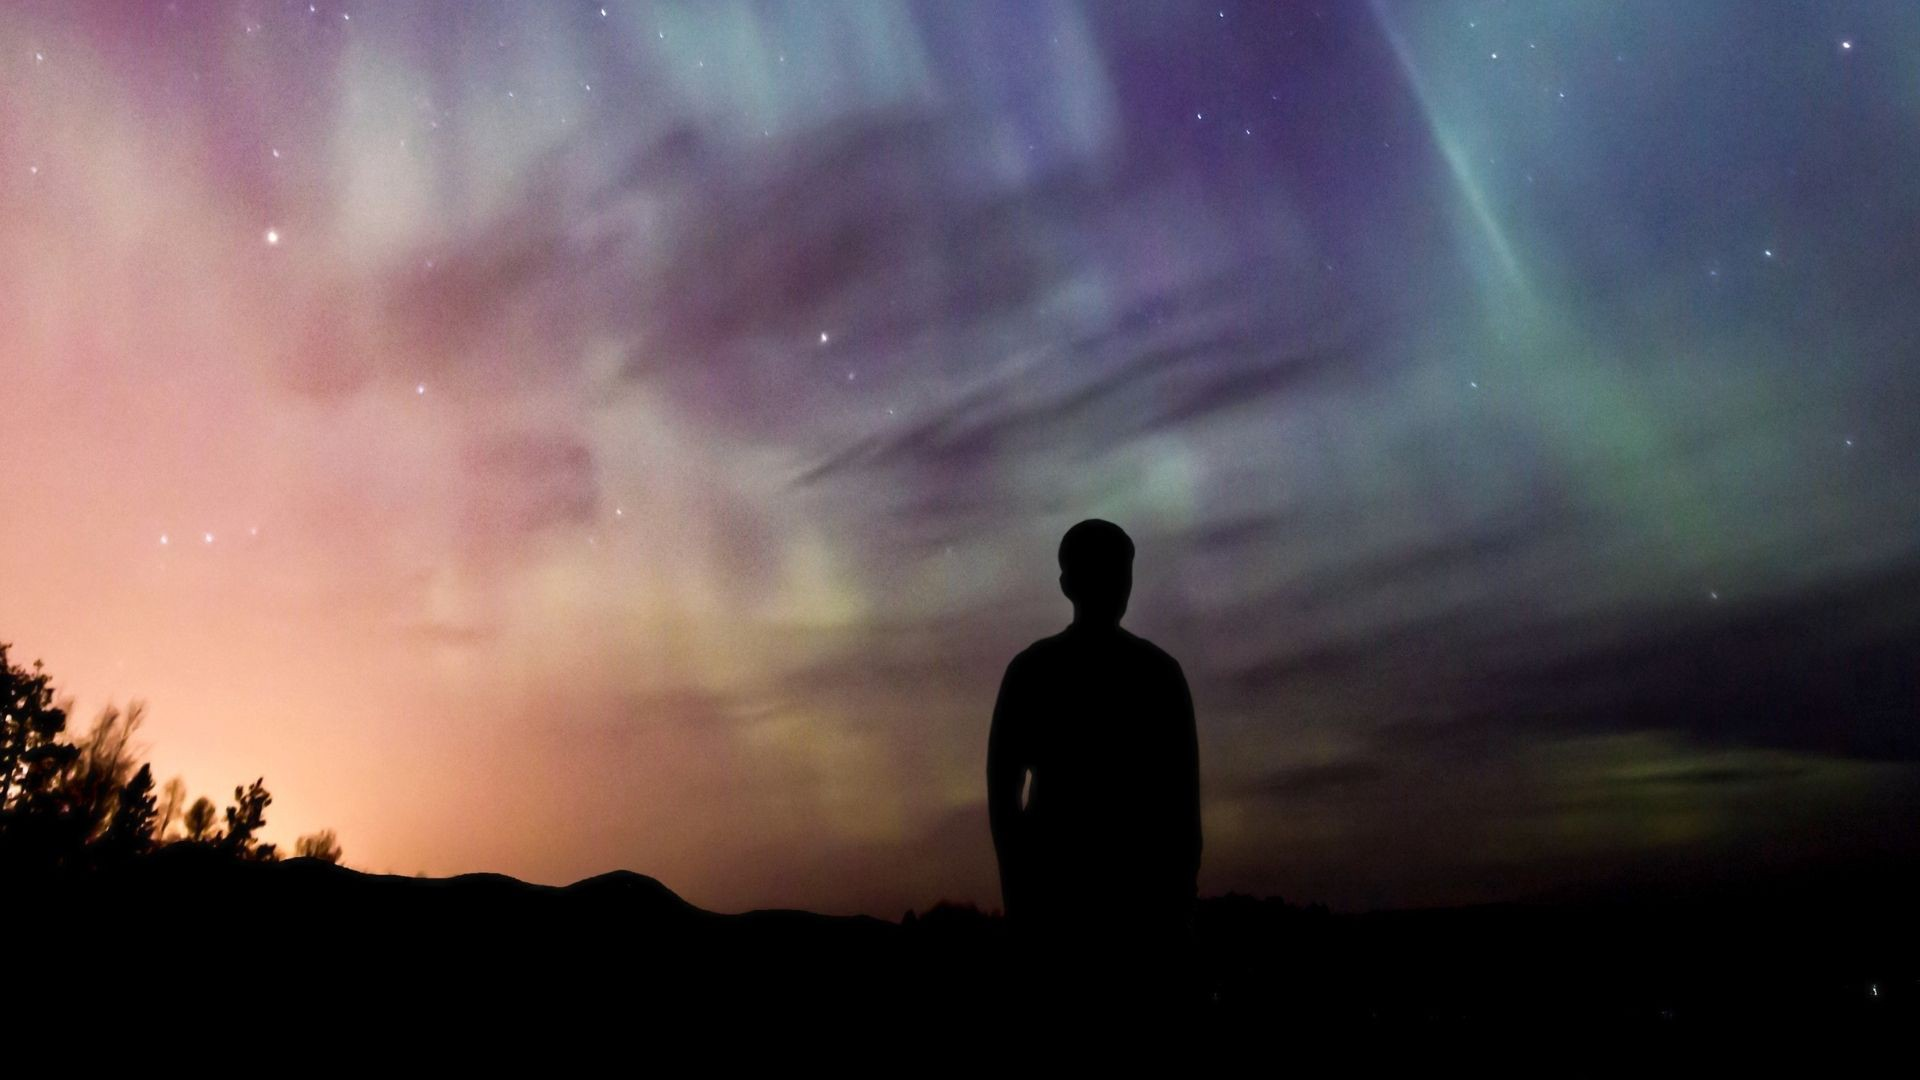 Silhouette of a person looking toward a colorful night sky